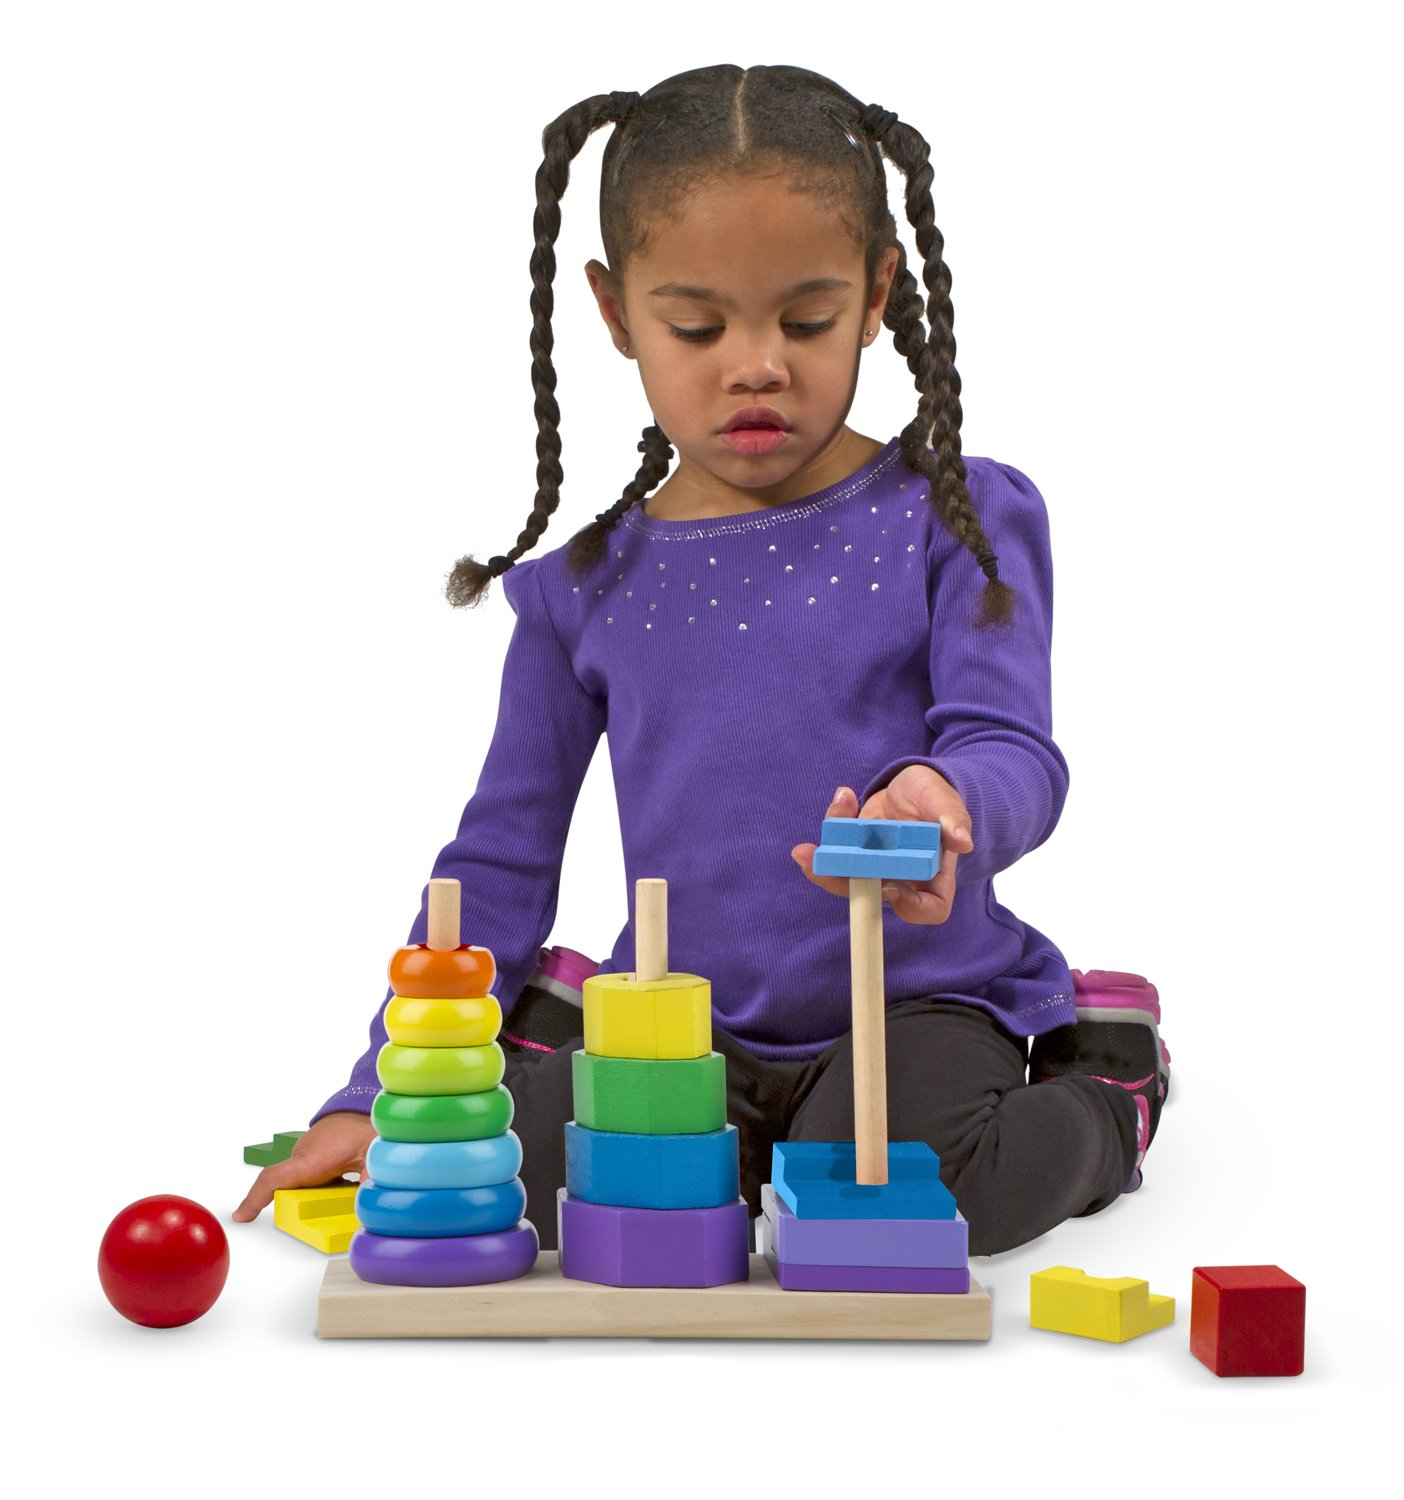 Melissa And Doug Educational Toys : Melissa and doug geometric stacker wooden baby toddlers